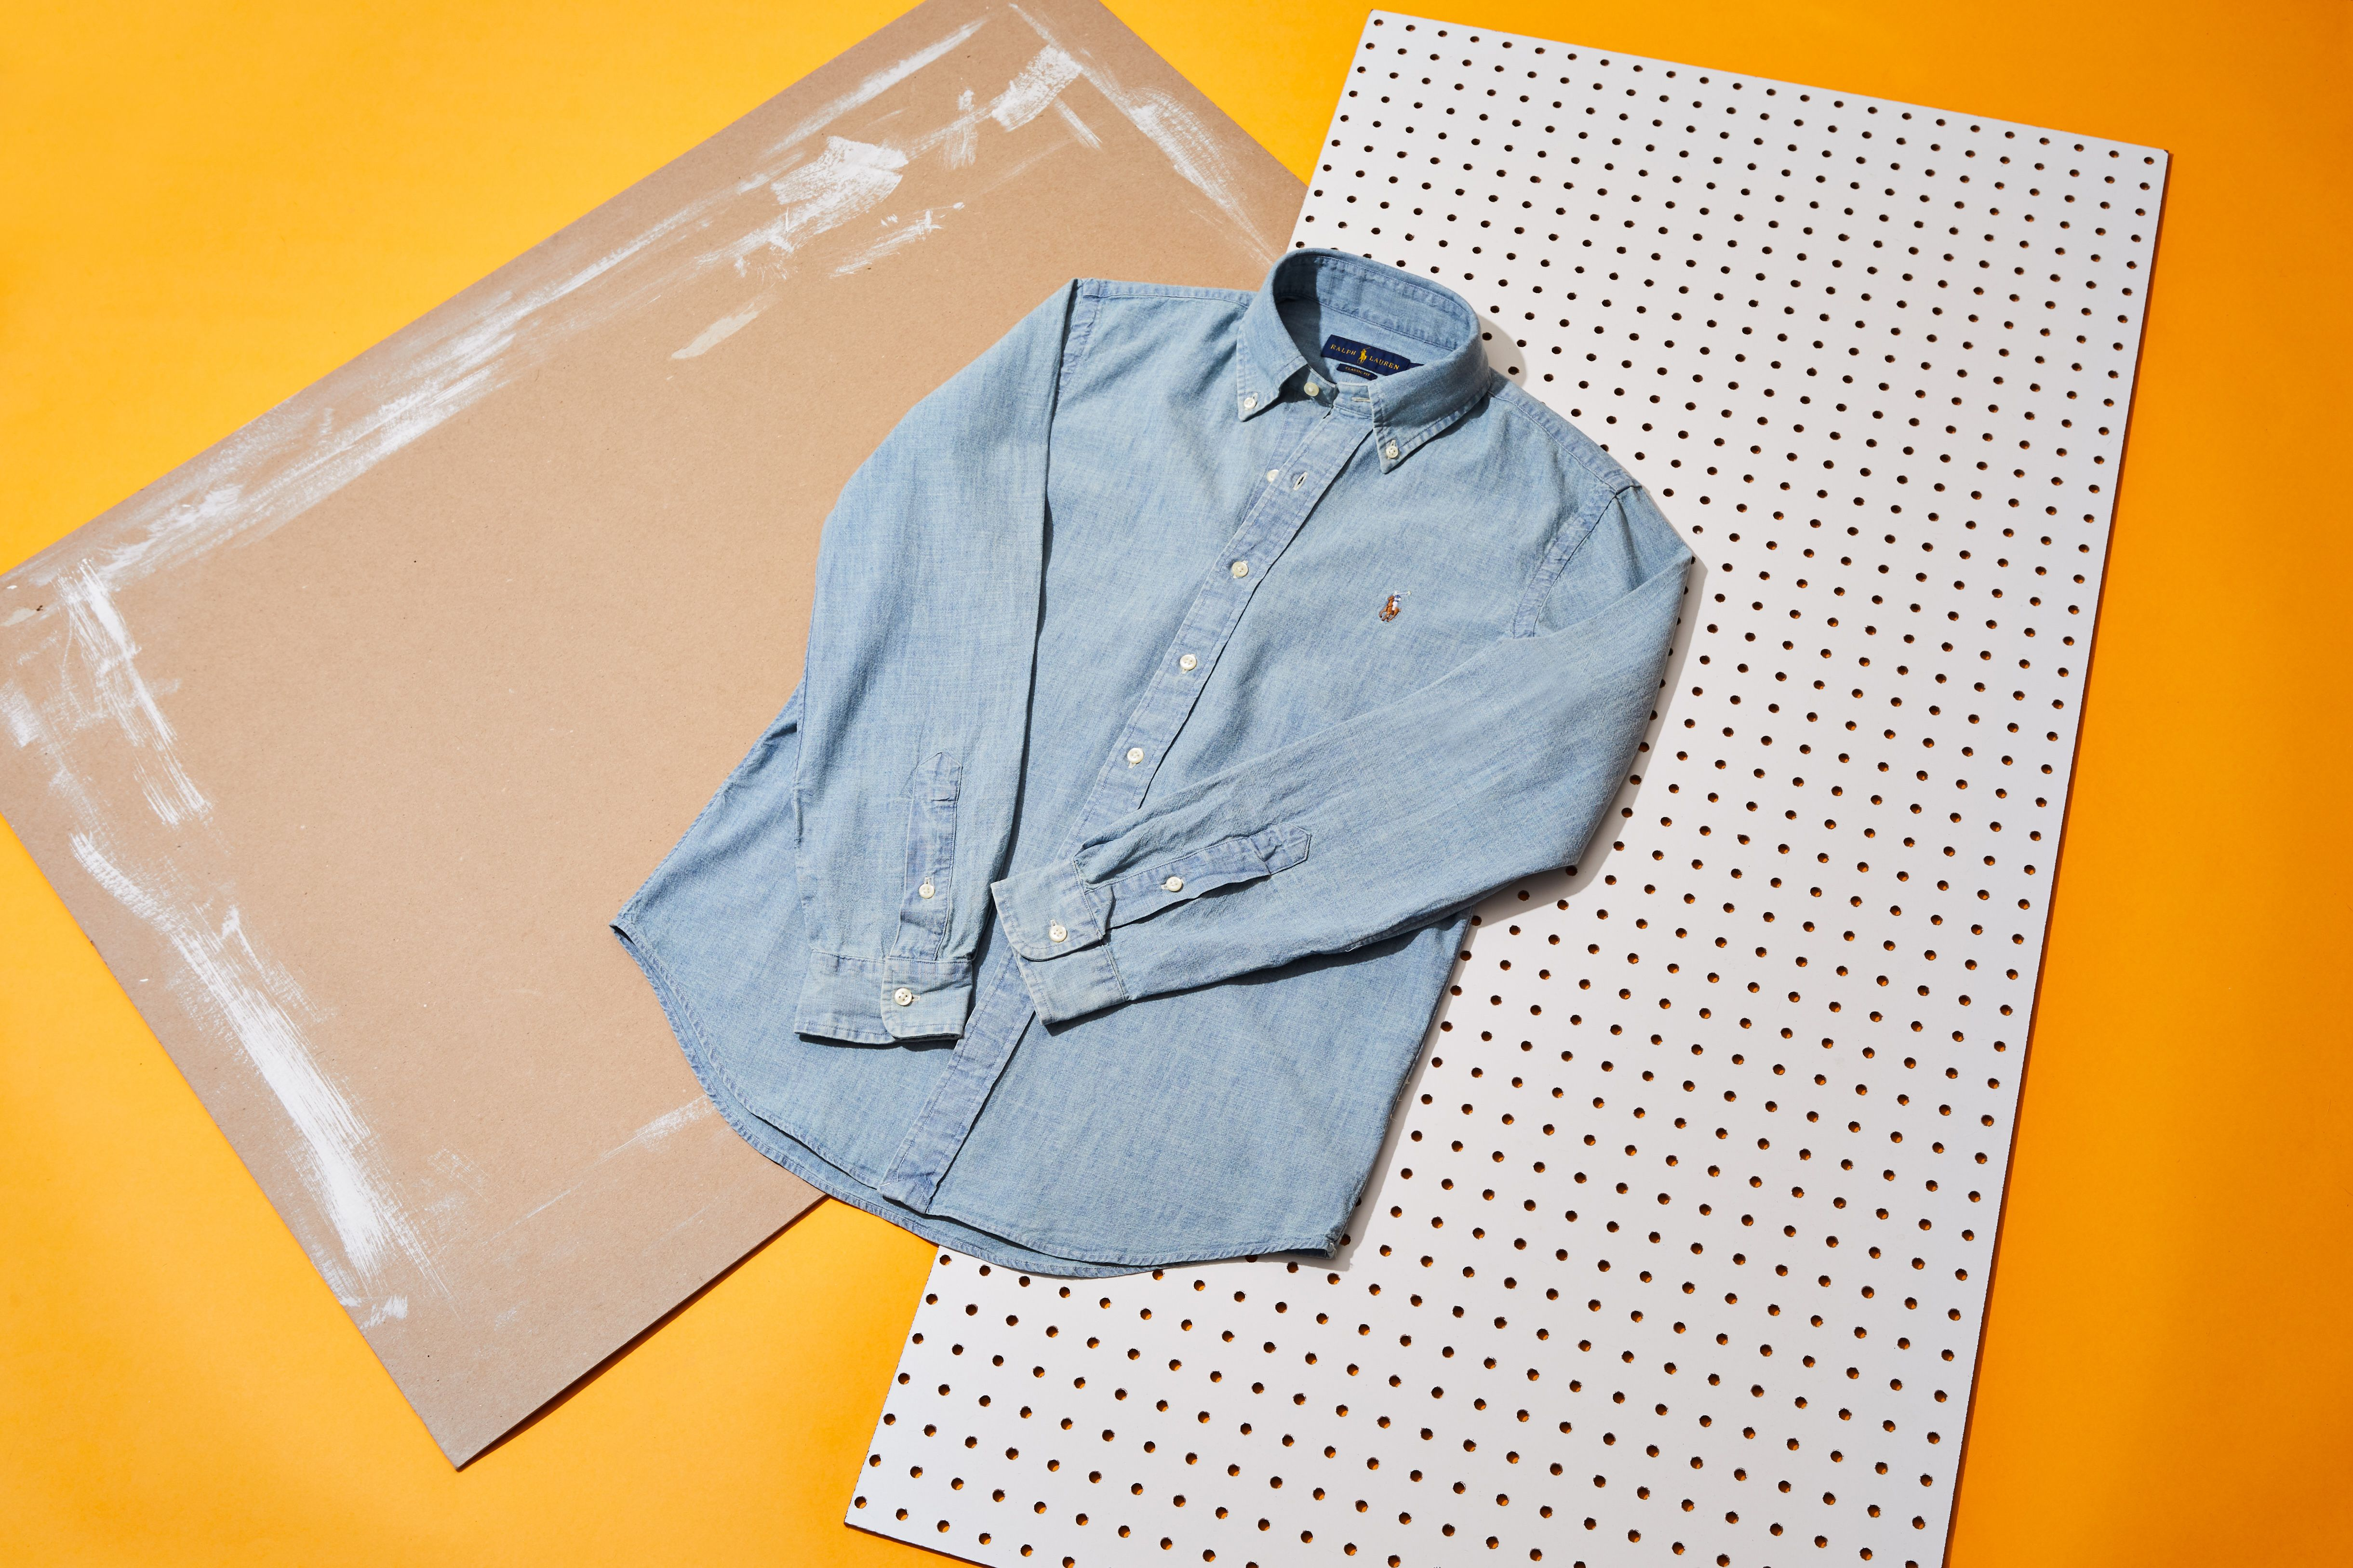 The Effortlessly Cool Summer Shirt That Looks Good in Every Situation